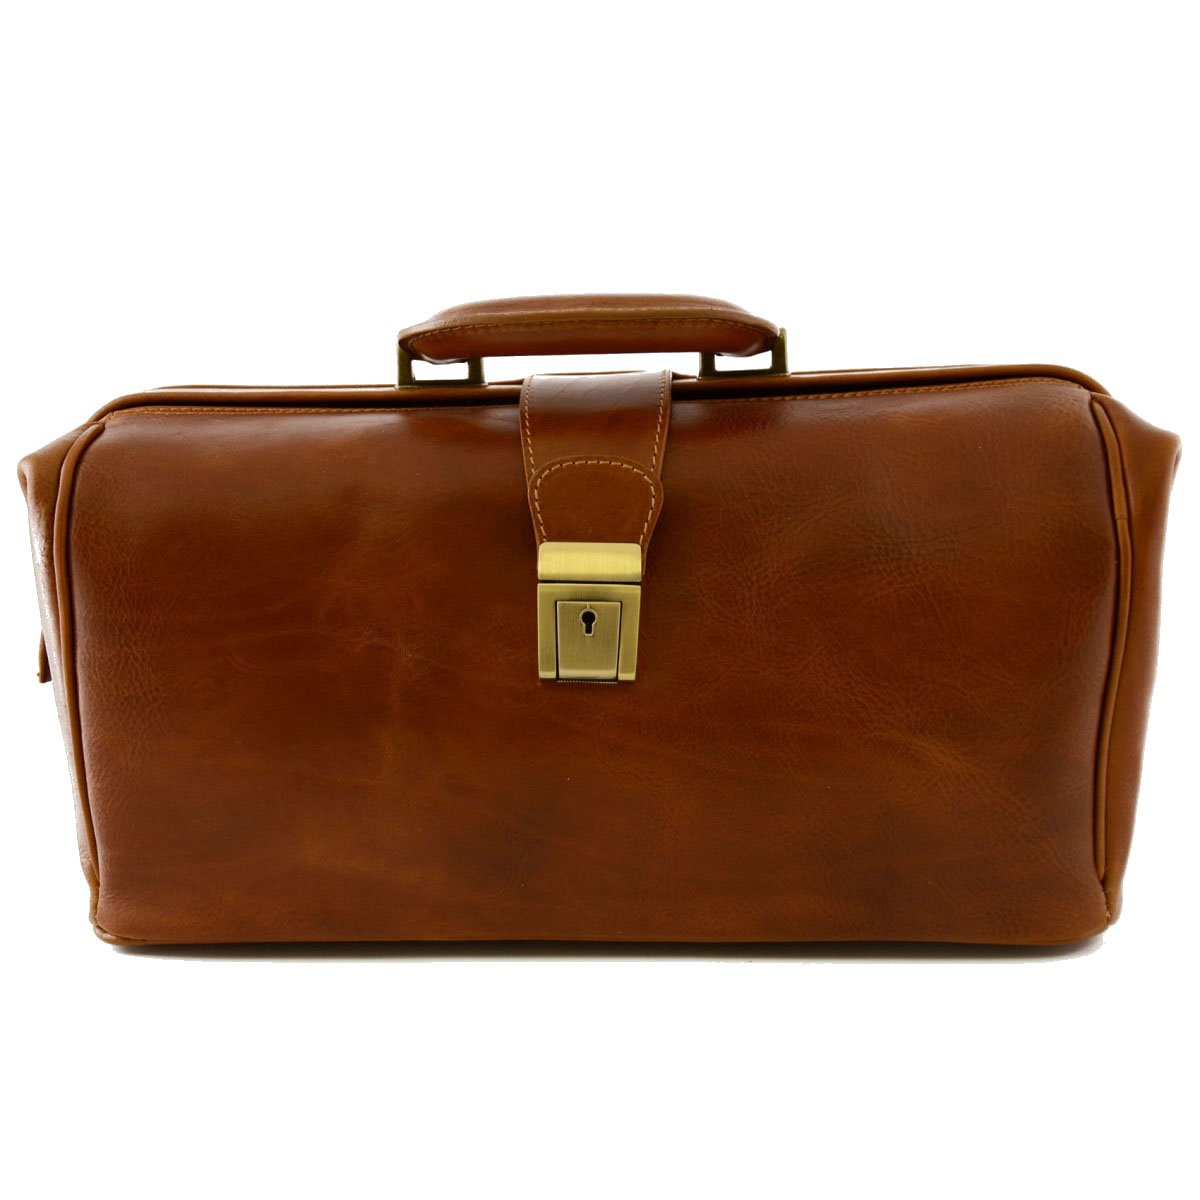 Made In Italy Genuine Leather Bag For Doctor, 1 Compartment Color Cognac - Business Bag B018W385KS